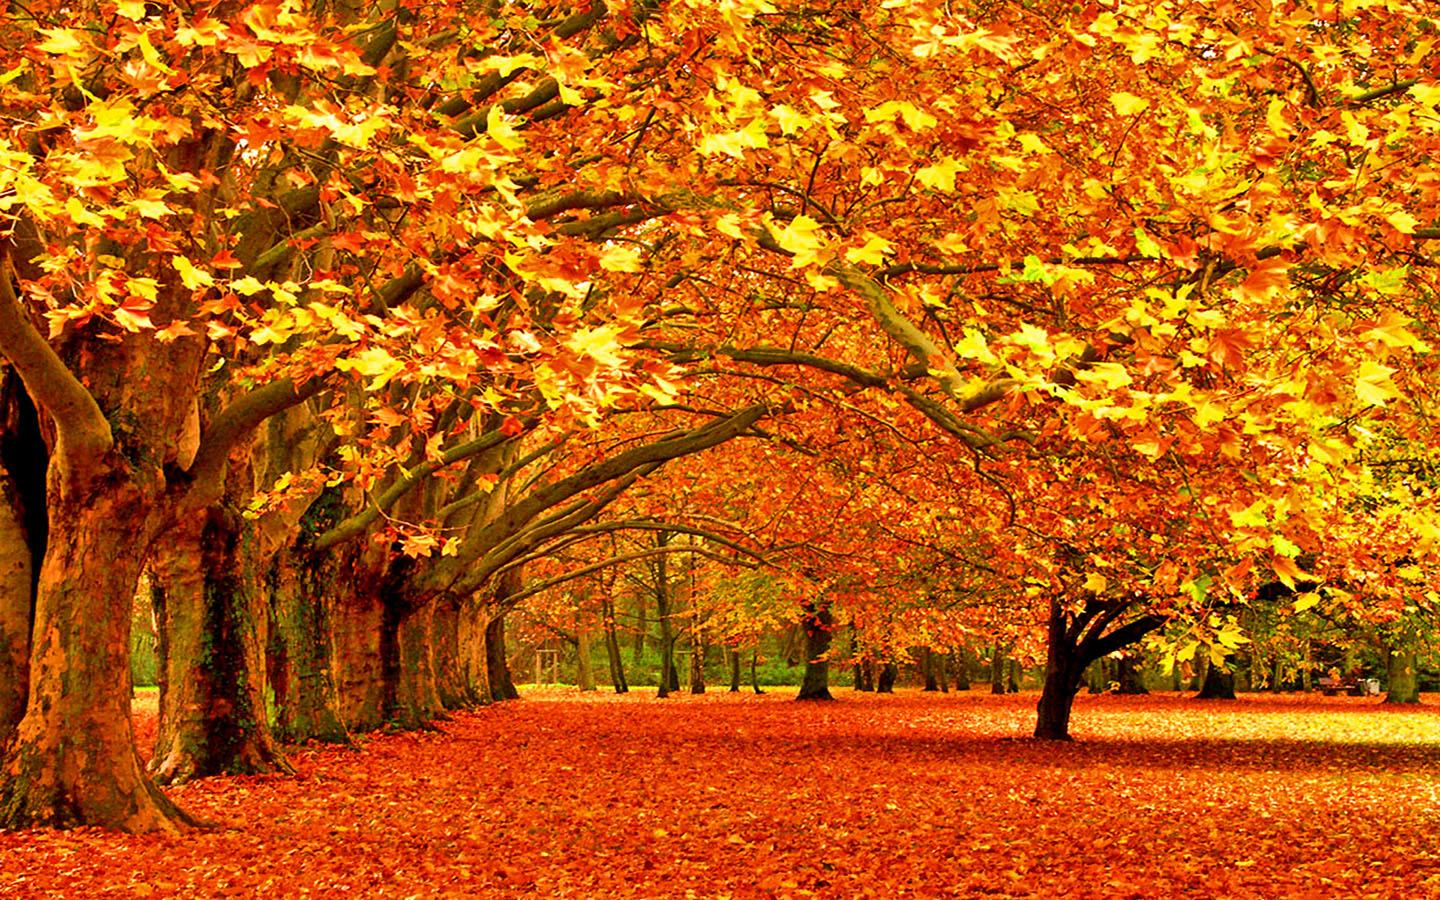 Autumn Wallpaper - Android Apps on Google Play